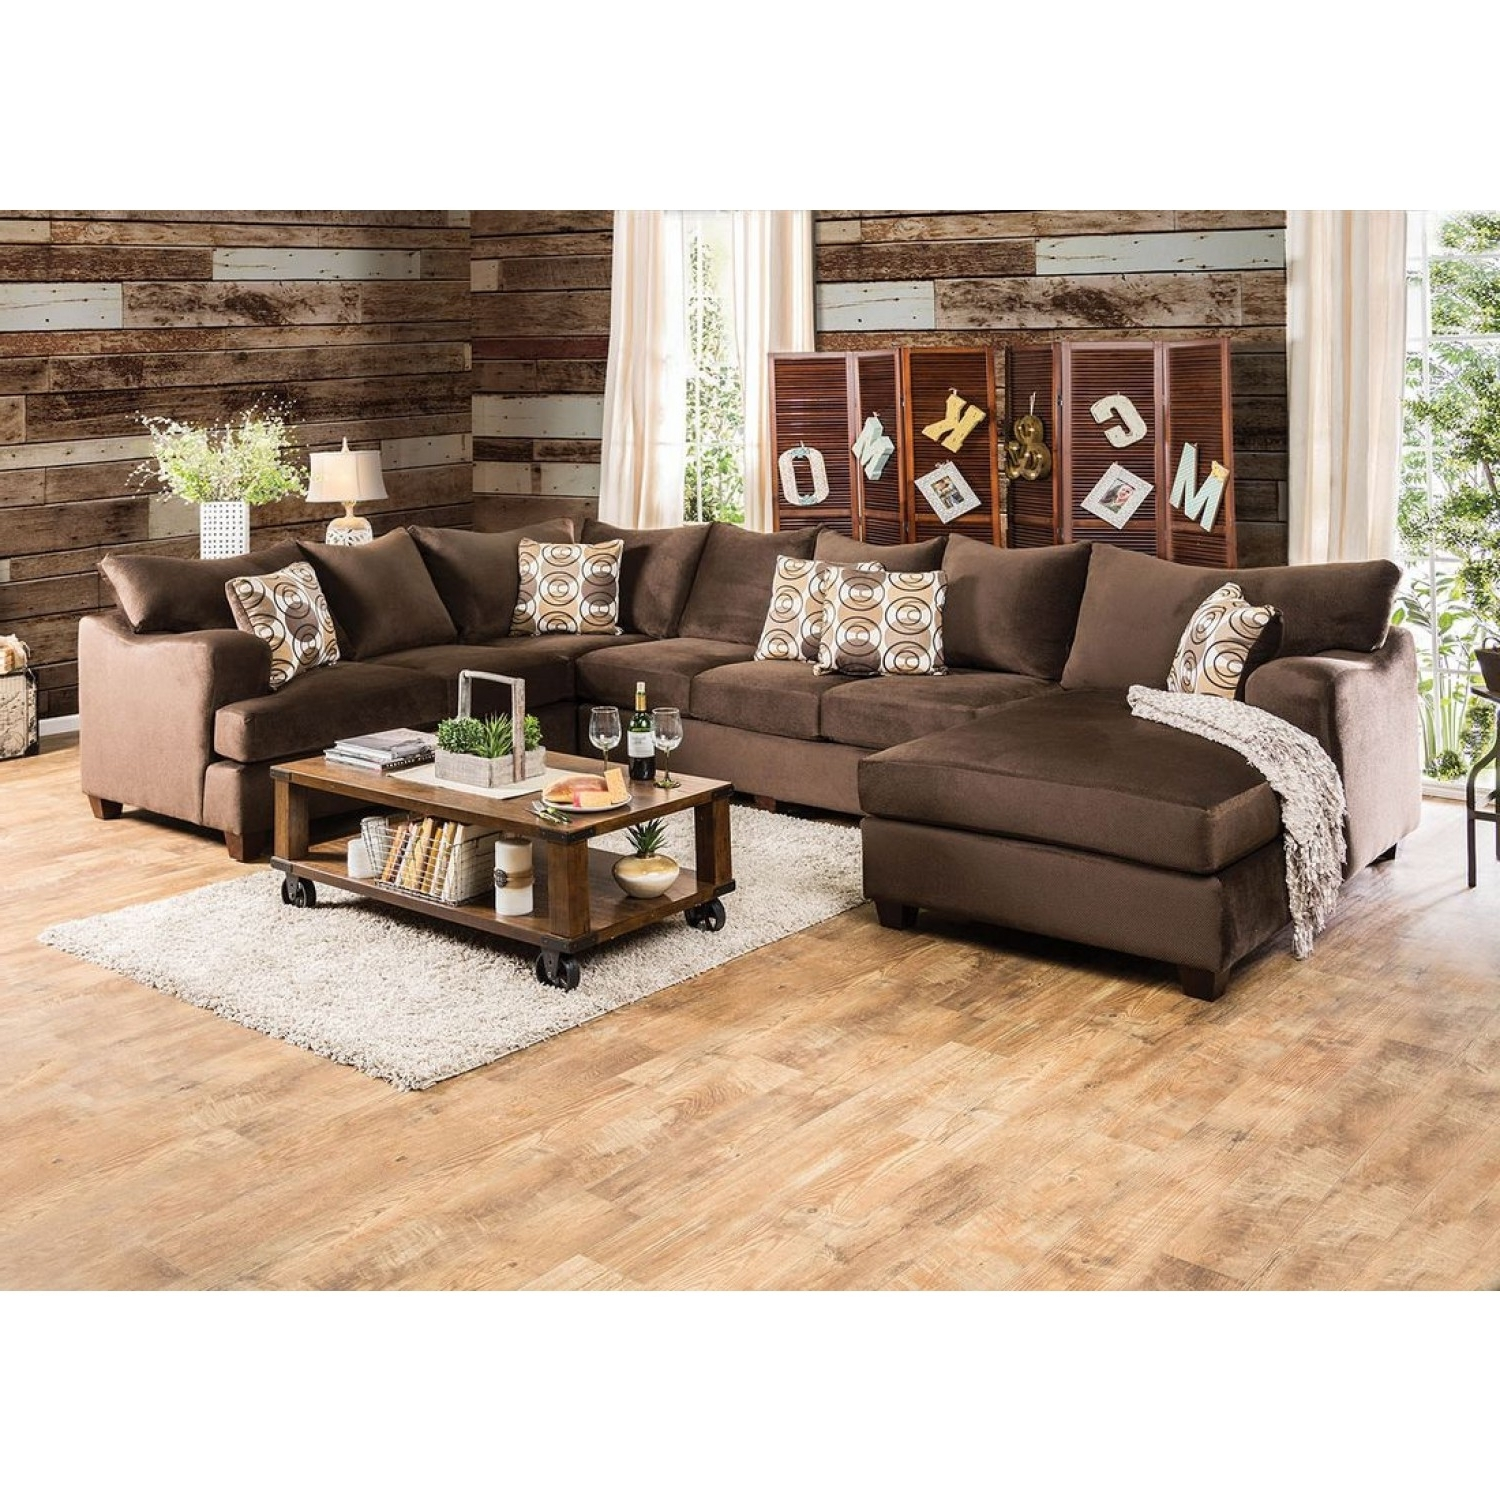 American Freight Sectionals Regarding Sectional Sofas At Birmingham Al (View 2 of 15)